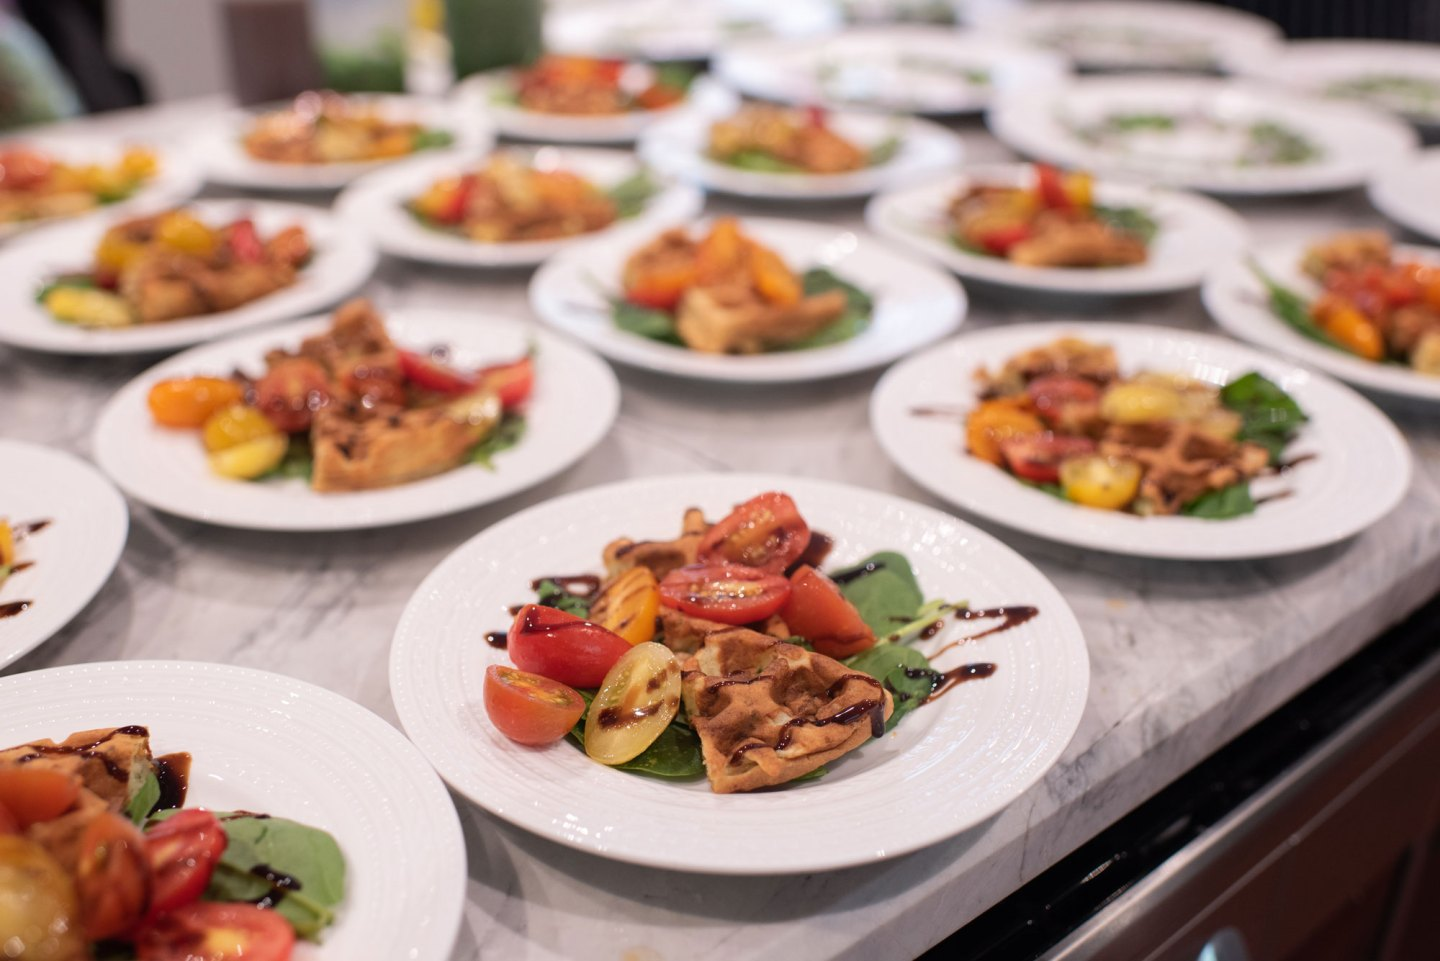 spa-food-sho Black-Owned Bed & Breakfast in Maryland: How to Host an Event in an Intimate Venue